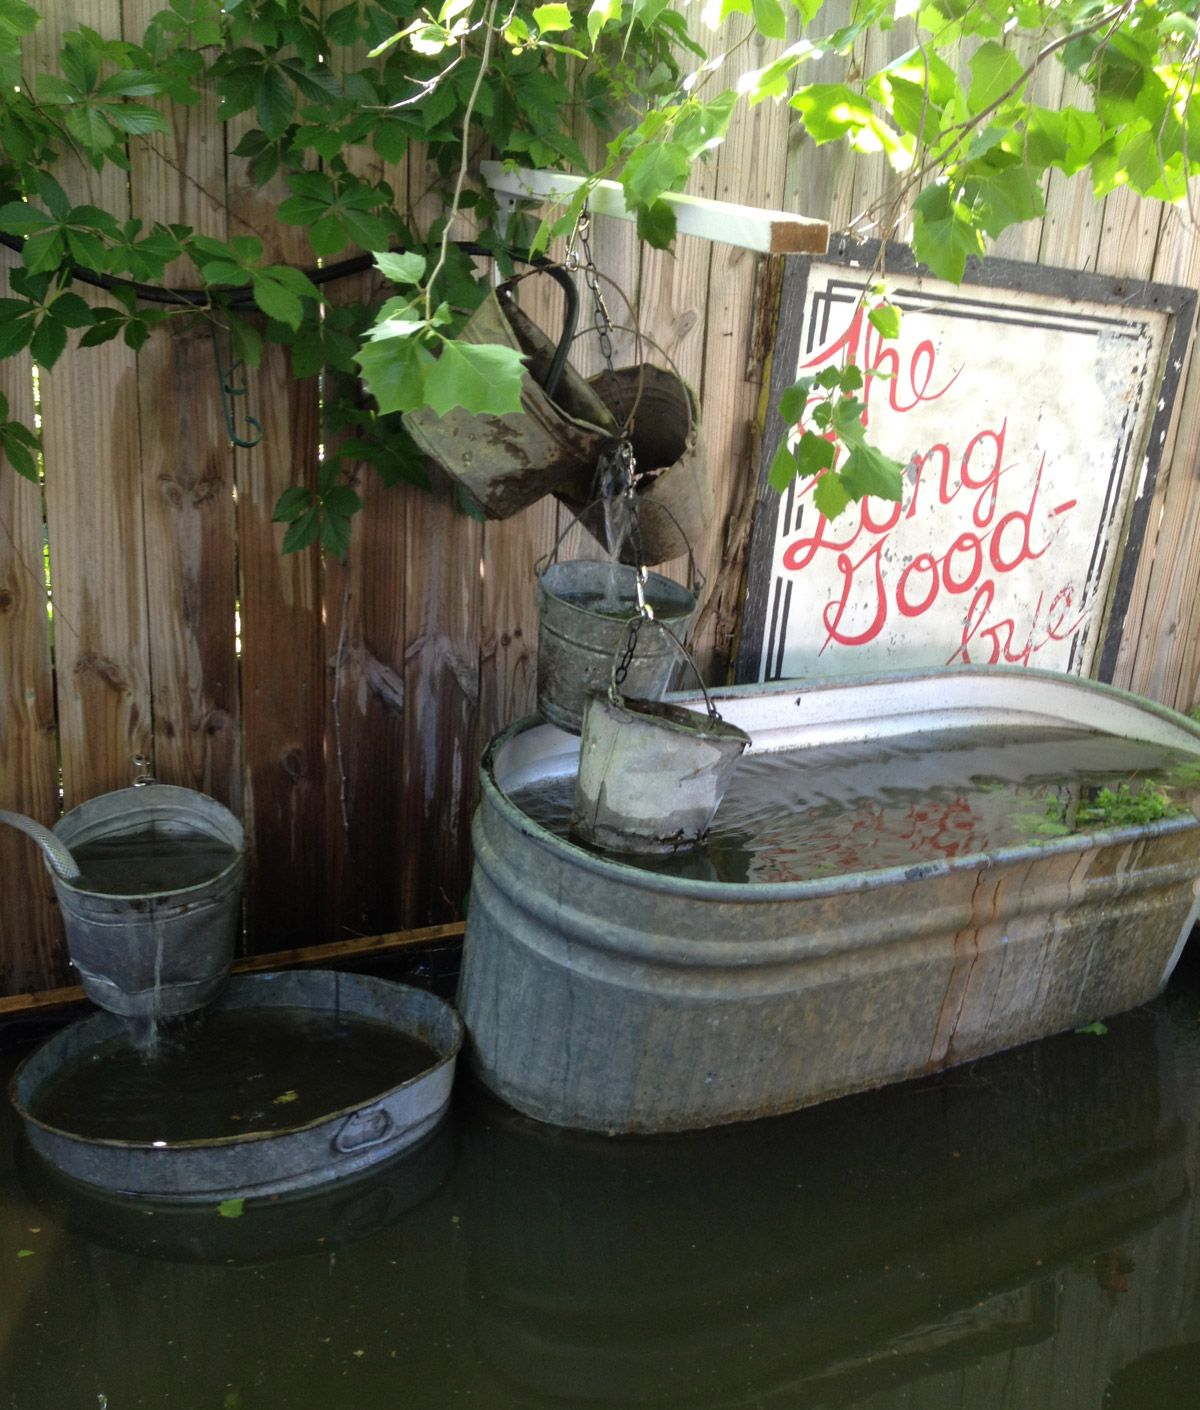 7 Affordable Landscaping Ideas For Under 1 000: How To Build A No-Dig Backyard Pond For Under $70 (With